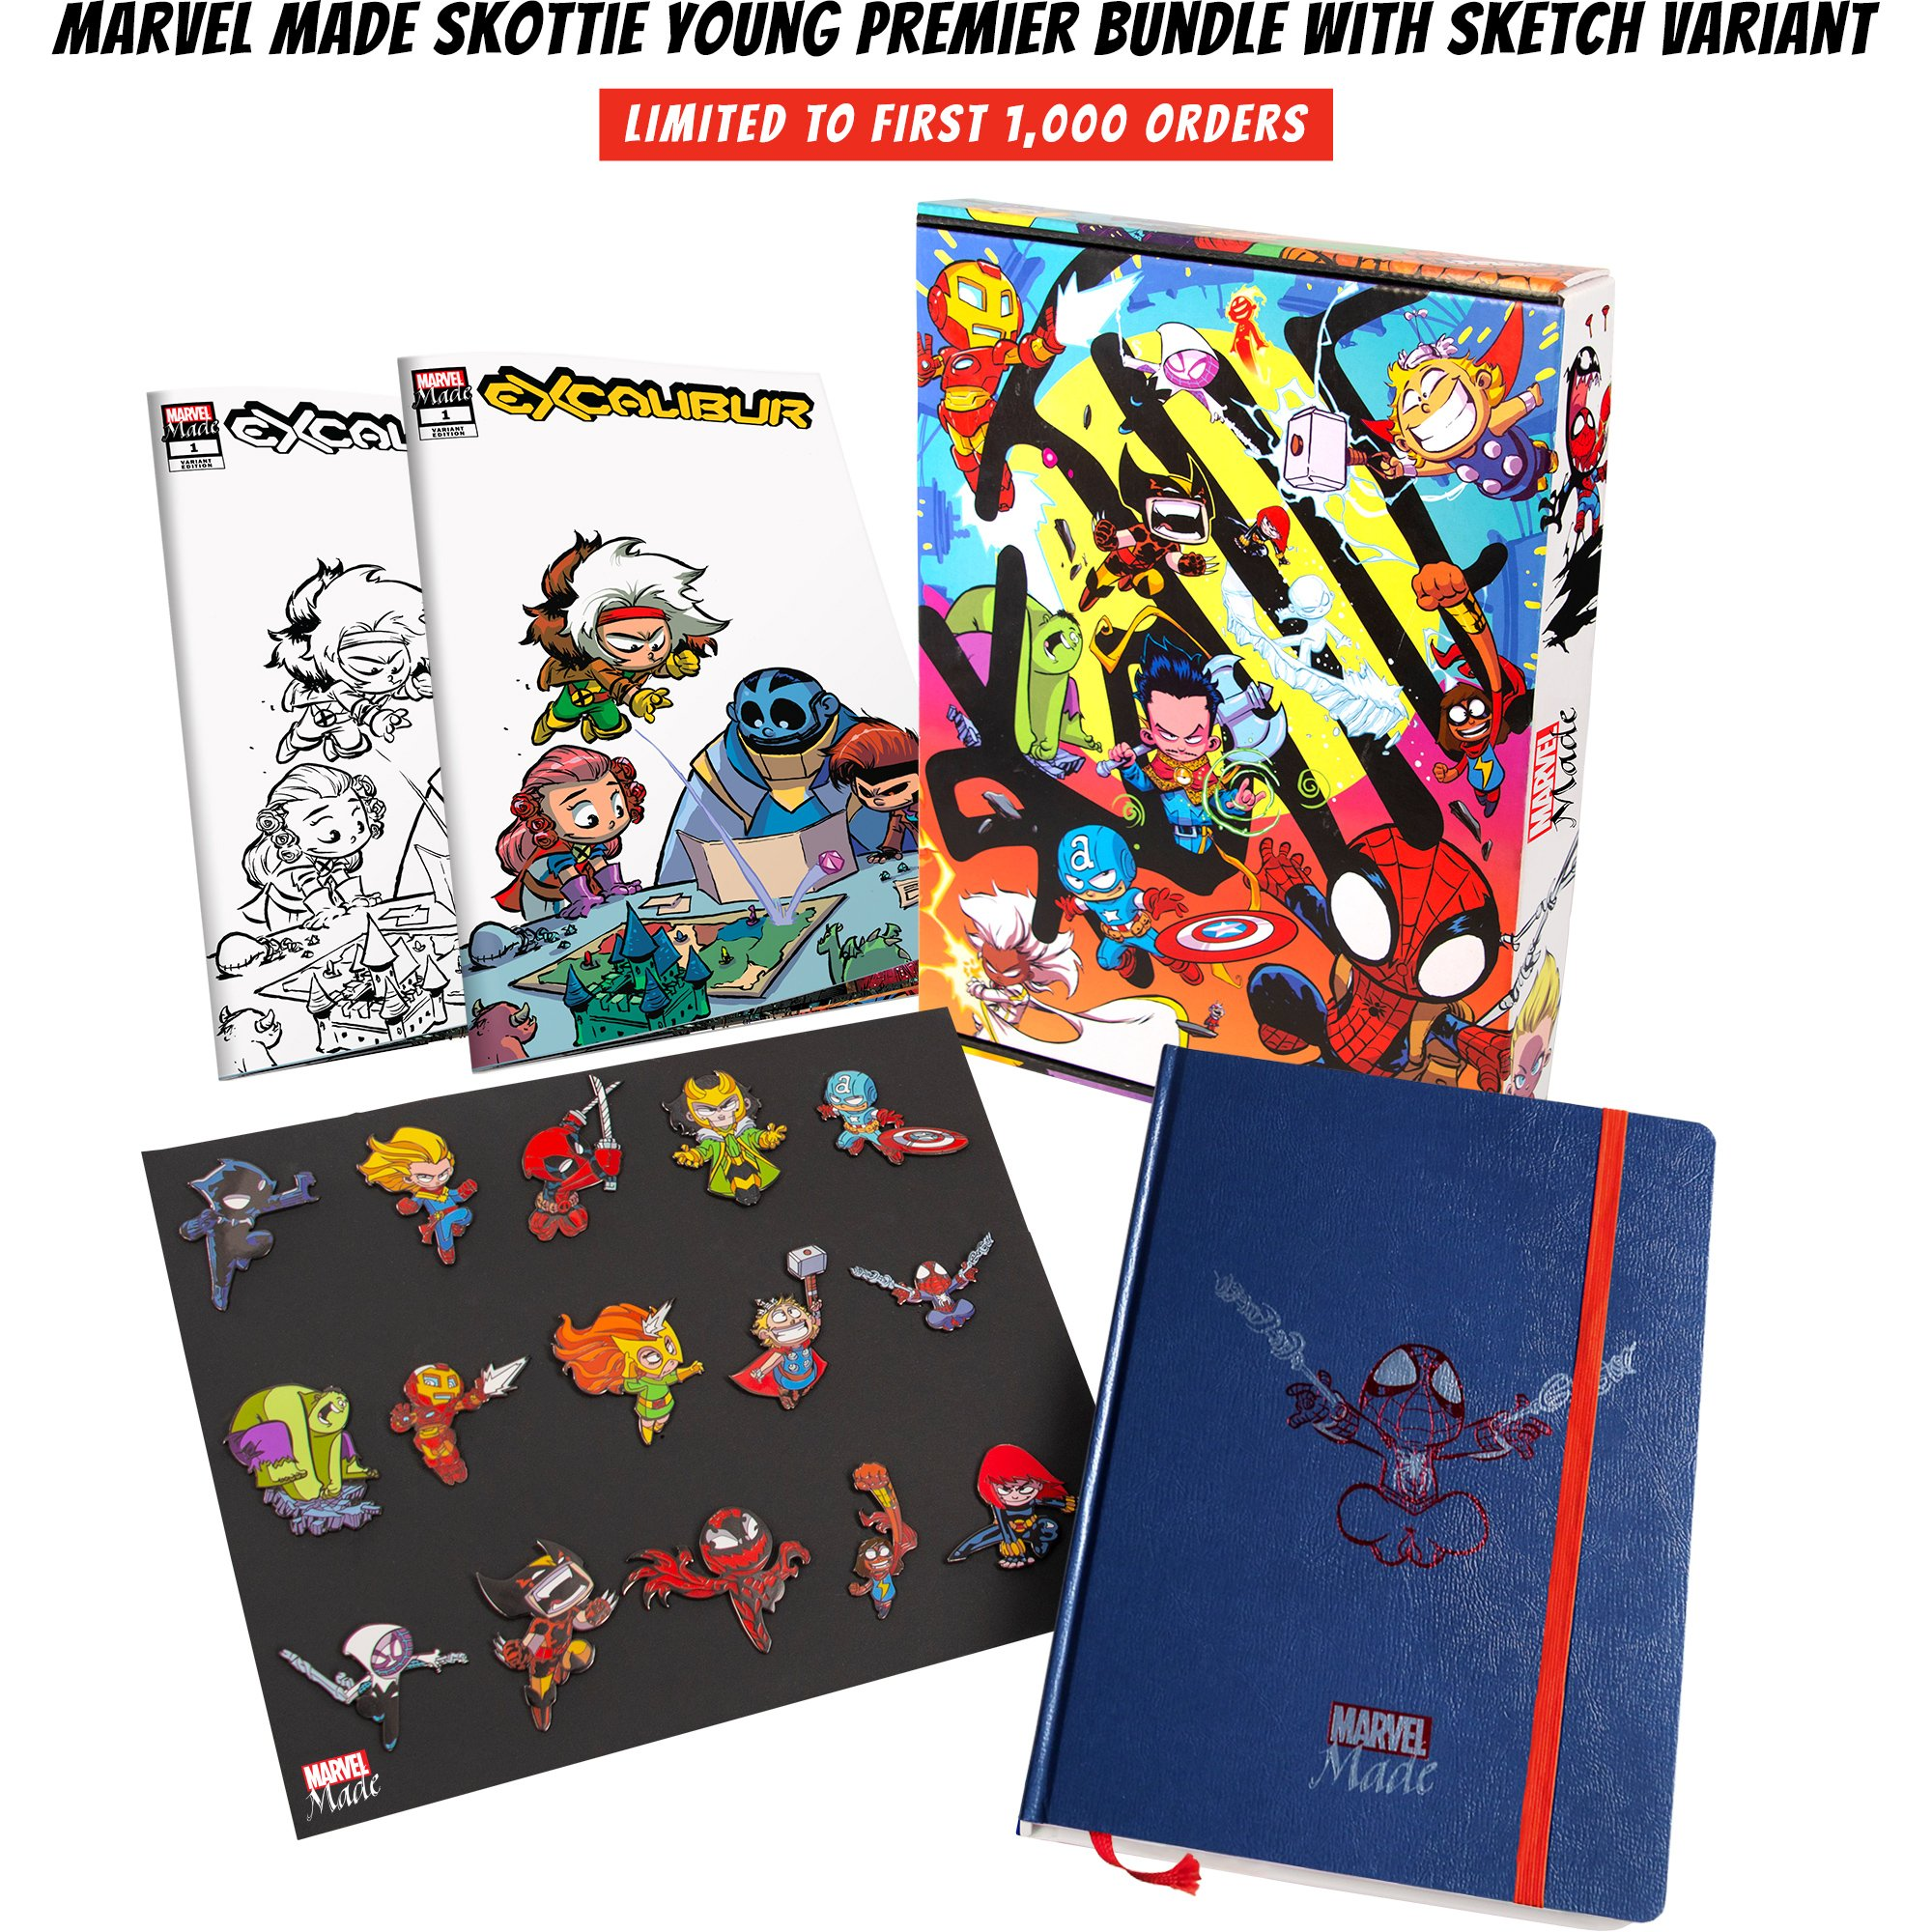 New Marvel Made exclusive collections